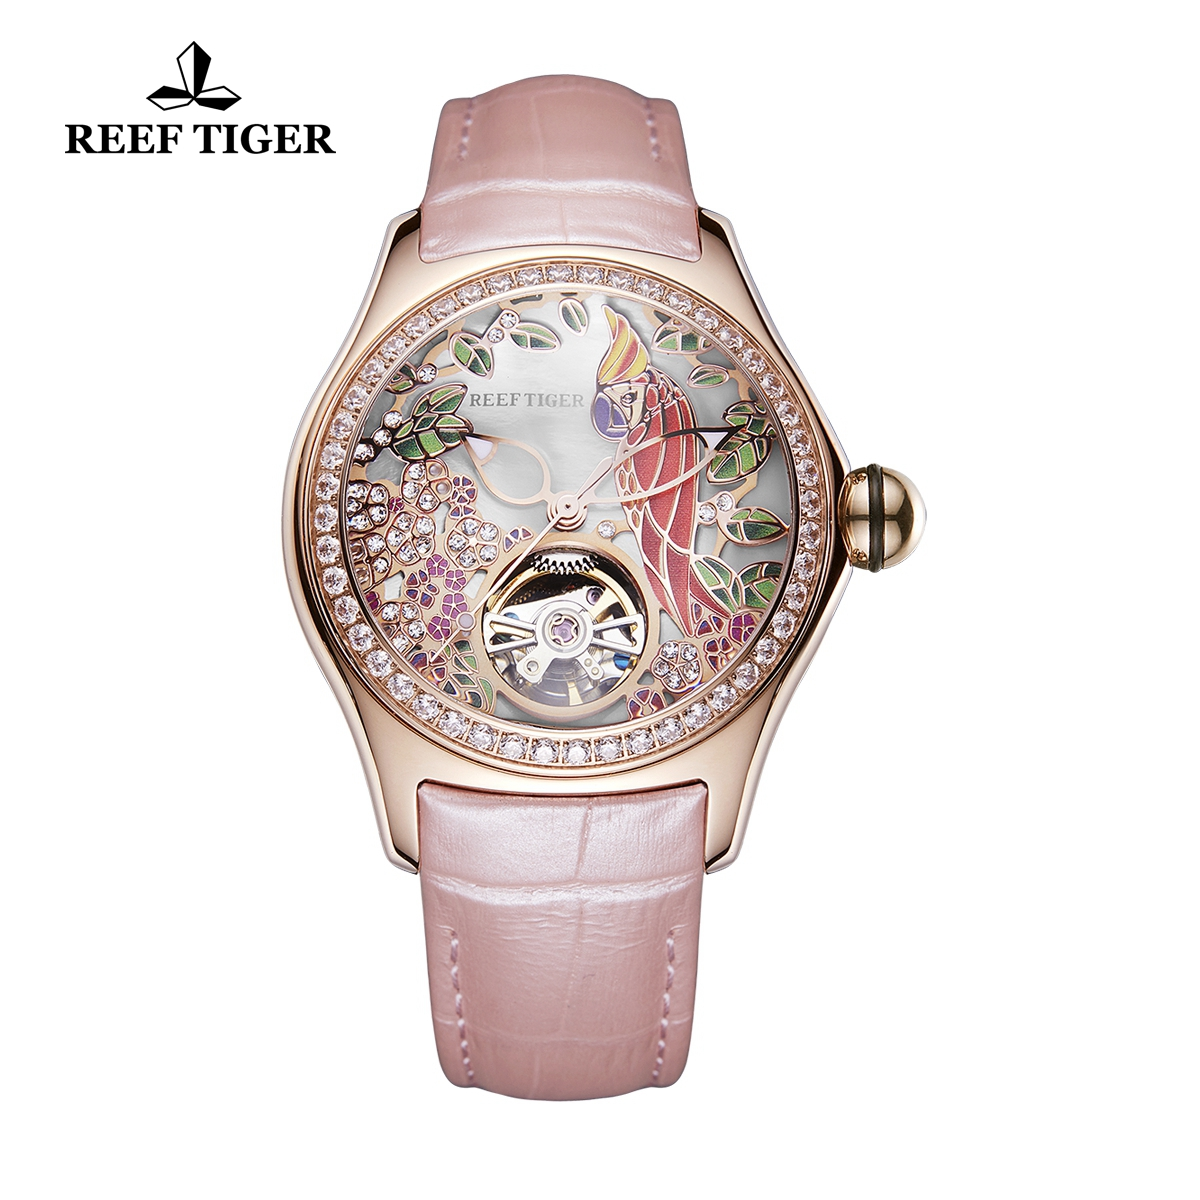 Reef Tiger Aurora Parrot Casual Diamonds Bezel Watch Rose Gold Case Leather Strap RGA7105-PSPD